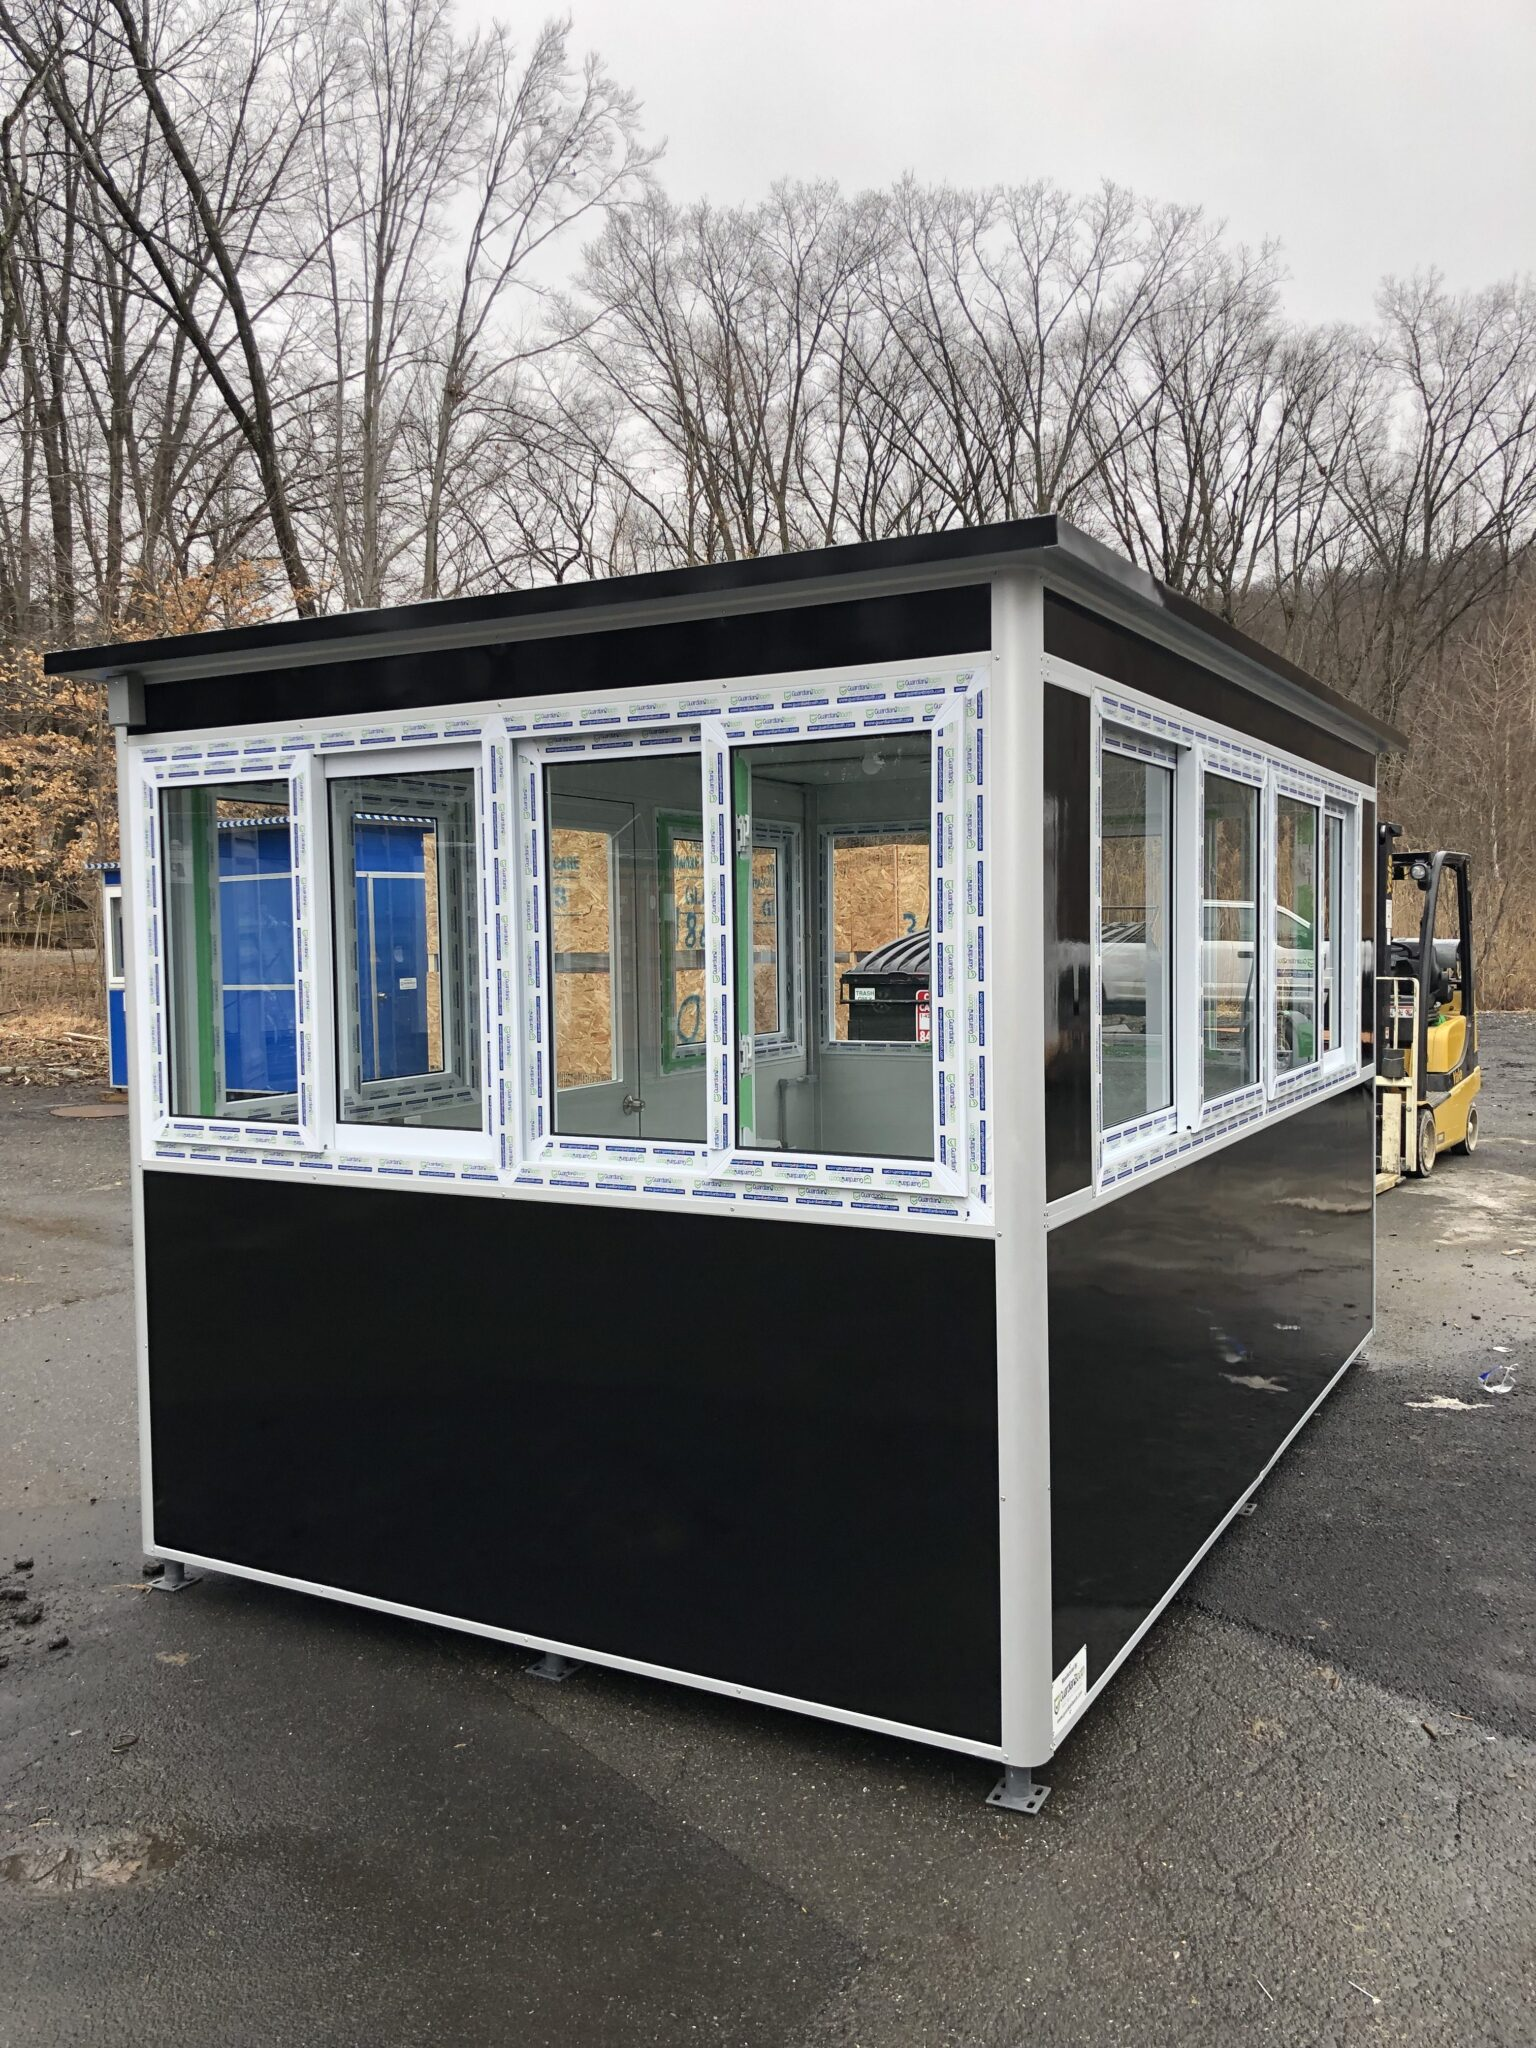 8x12 Parking Booth in Brooklyn, NY at iPark location with Sliding Windows, Custom Exterior Color, Built-in AC, and Breaker Panel Box